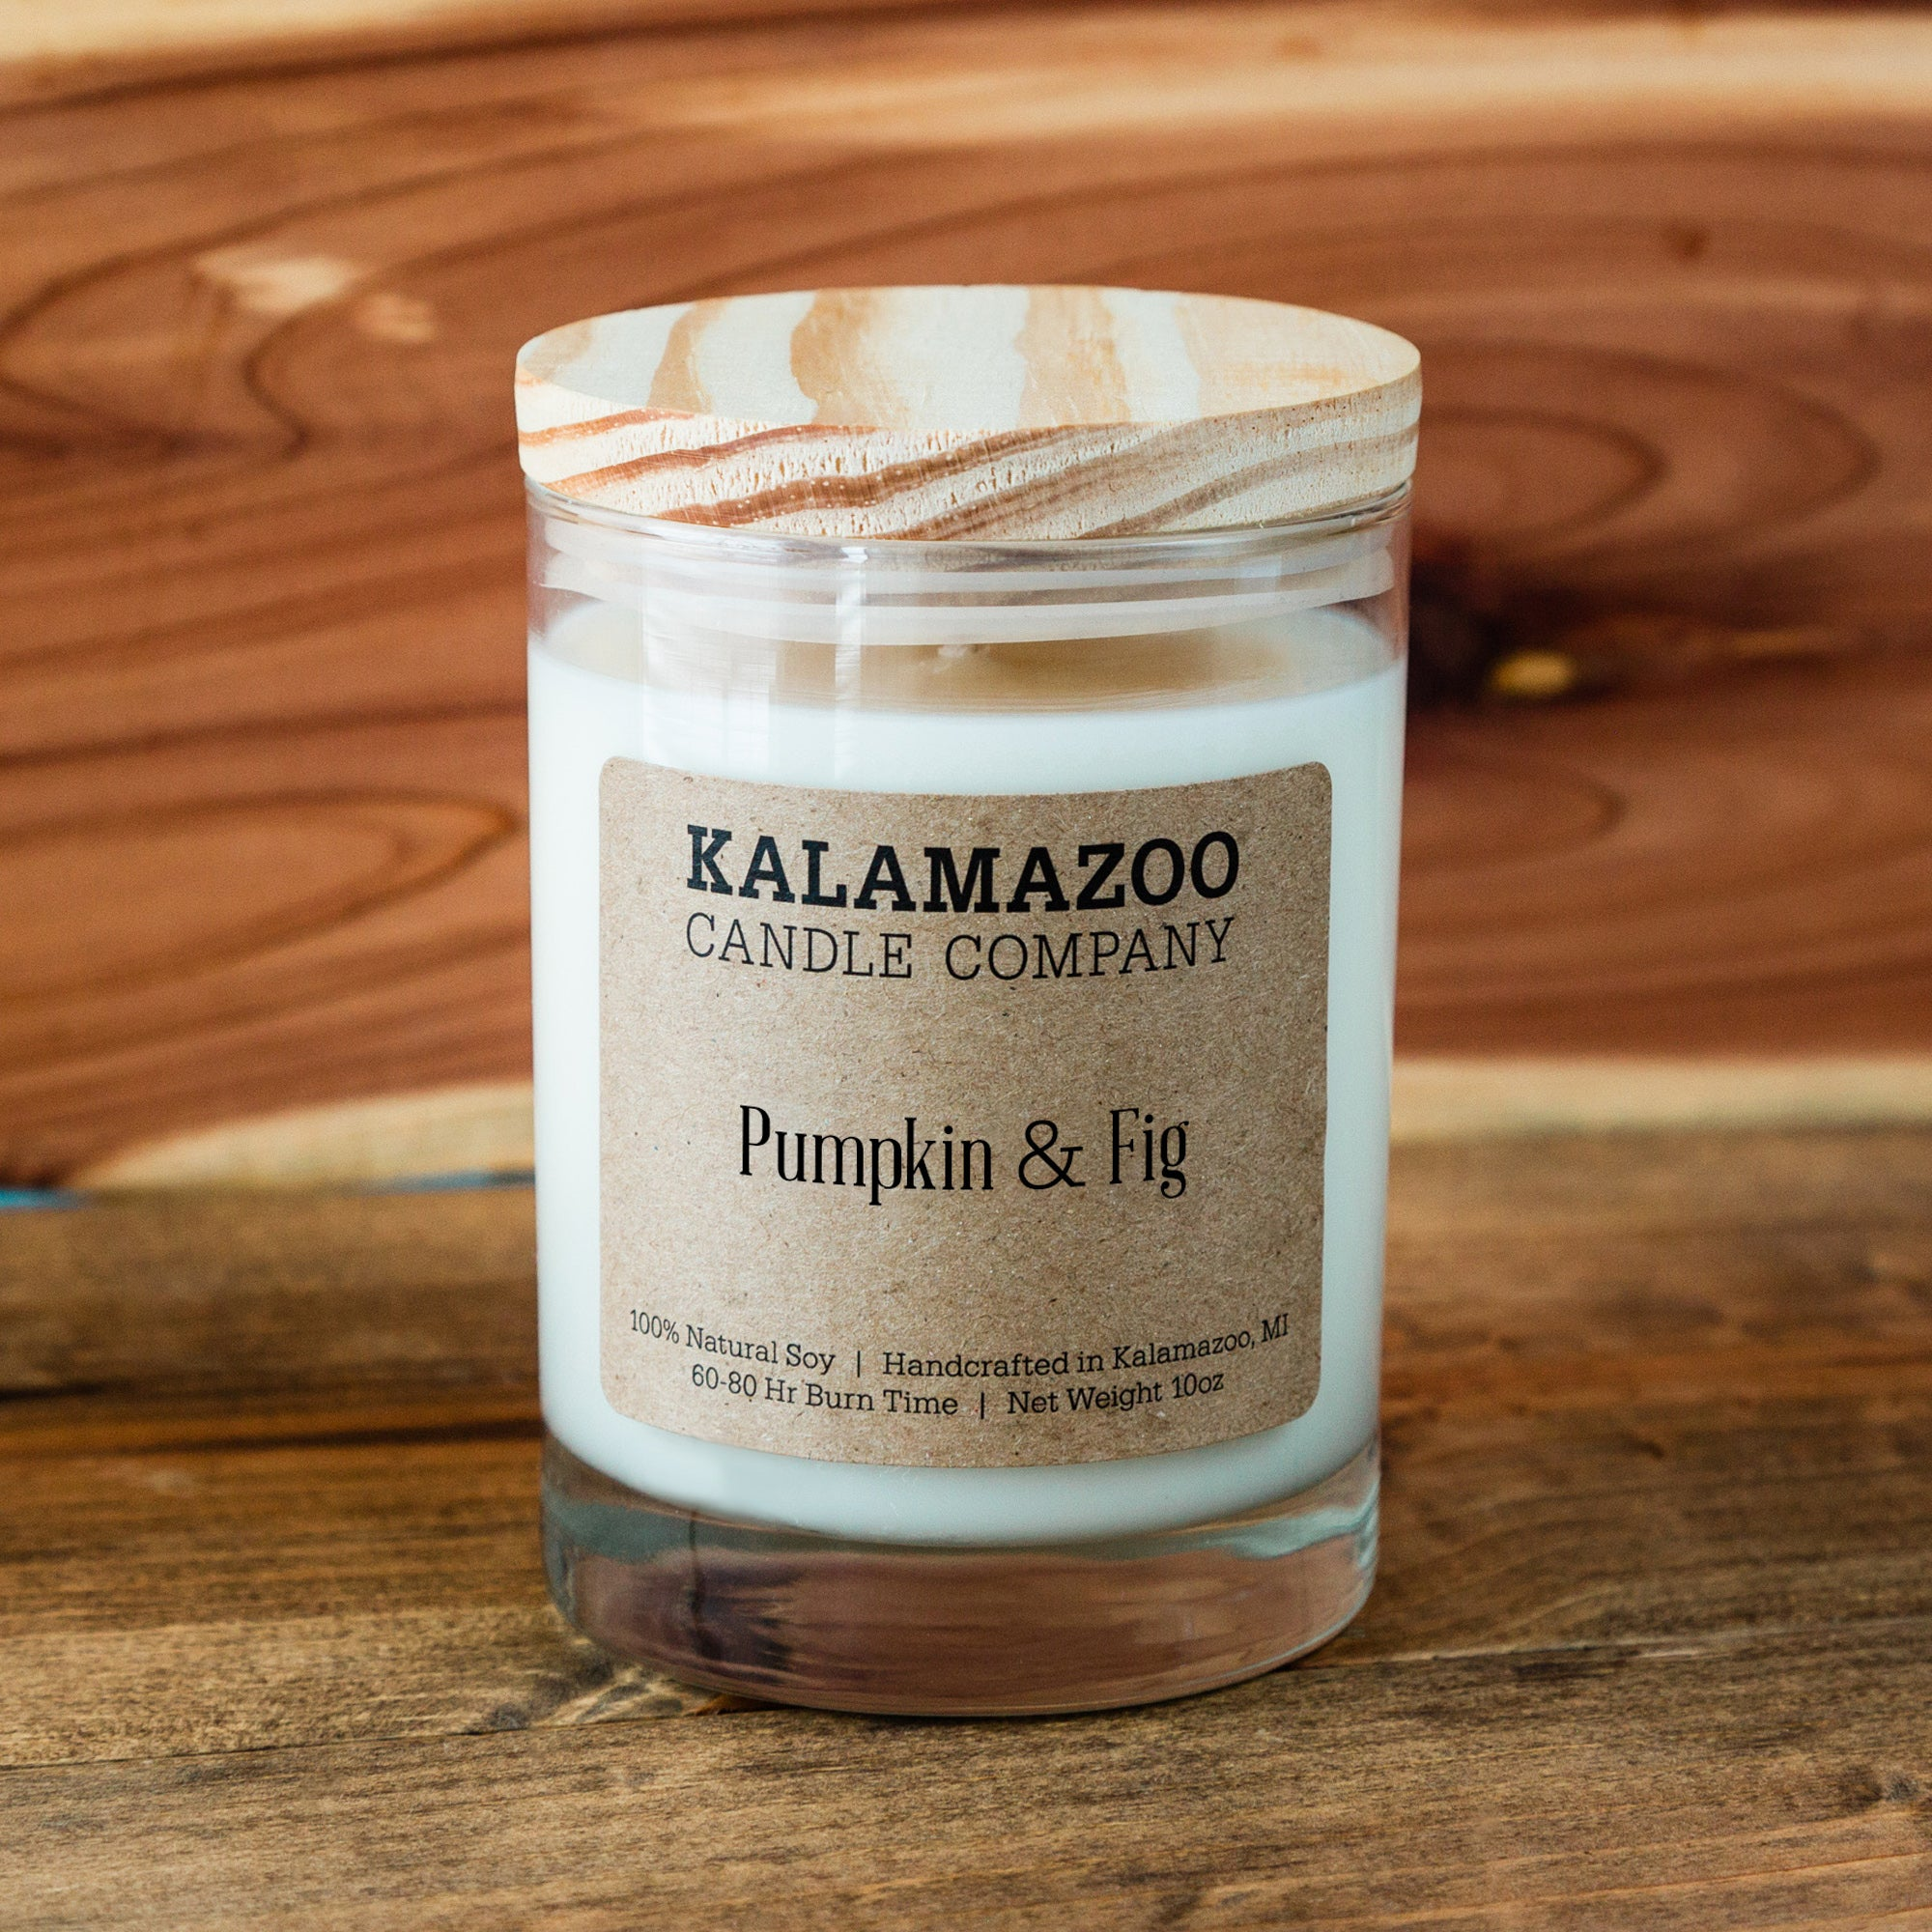 Pumpkin & Fig Candle: 10oz Jar